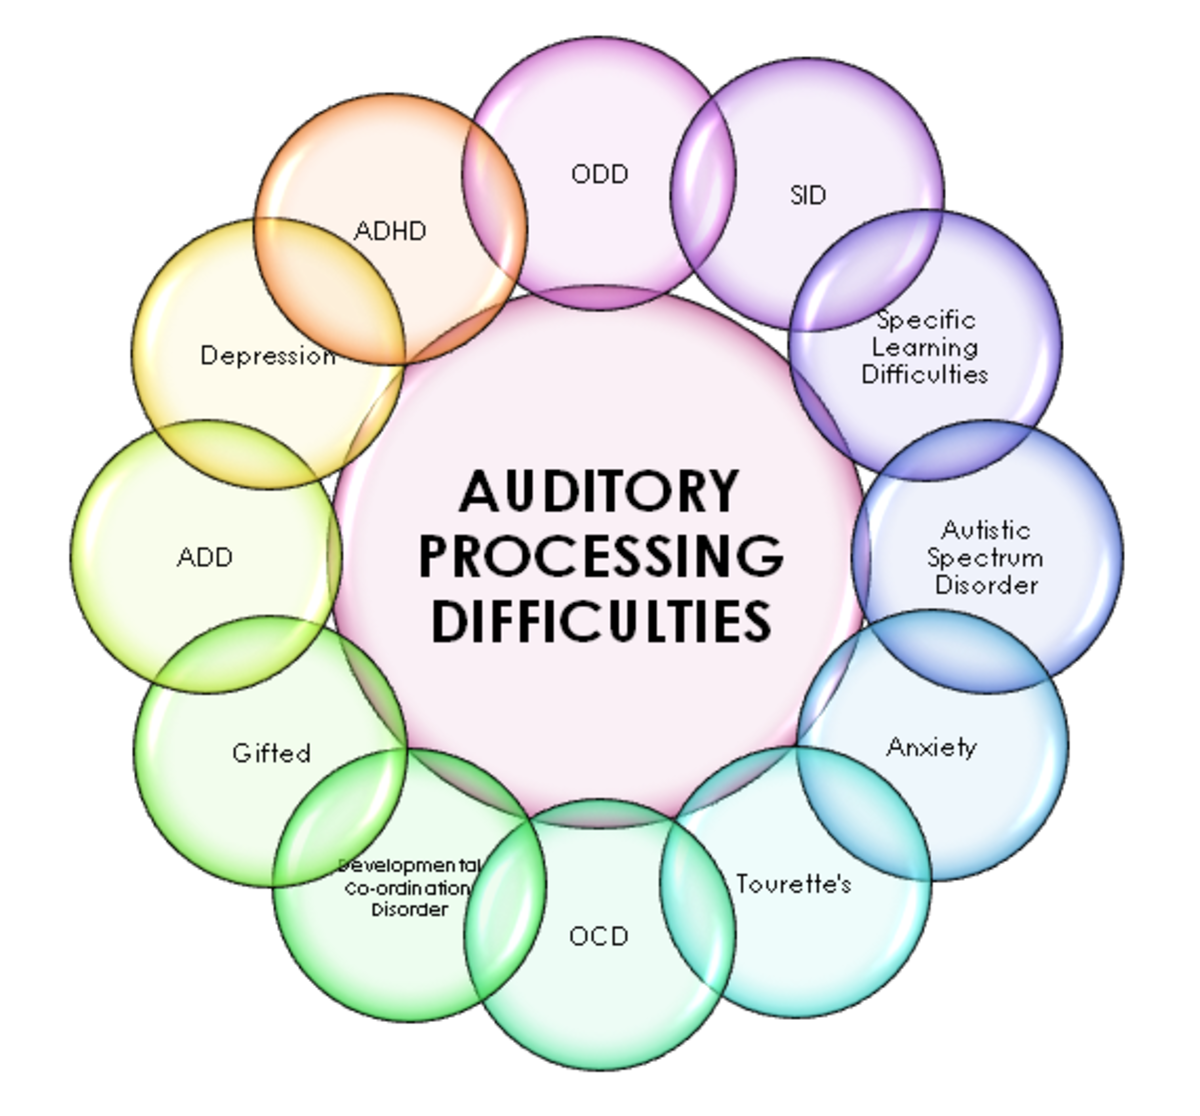 Originally posted on http://www.lanc.org.uk/related-conditions/auditory-processing-difficulties-adhd-asd/